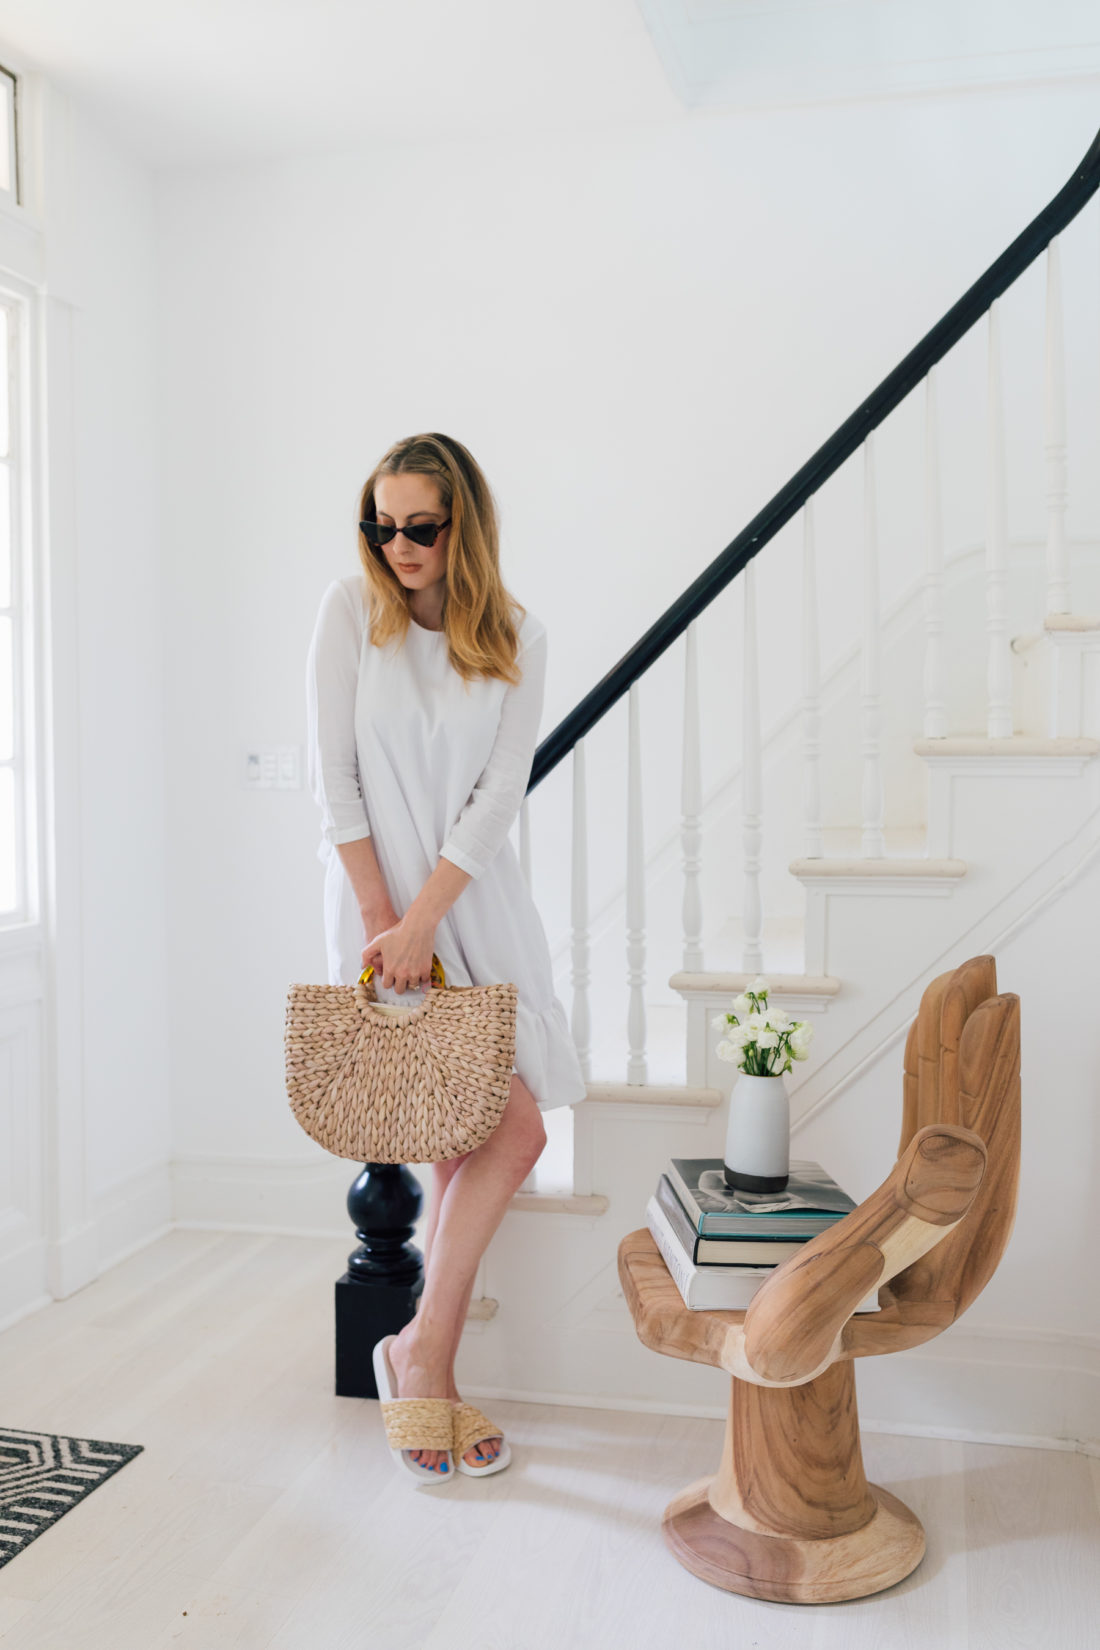 Eva Amurri Martino of Happily Eva After shares her favorite inexpensive summer accessories